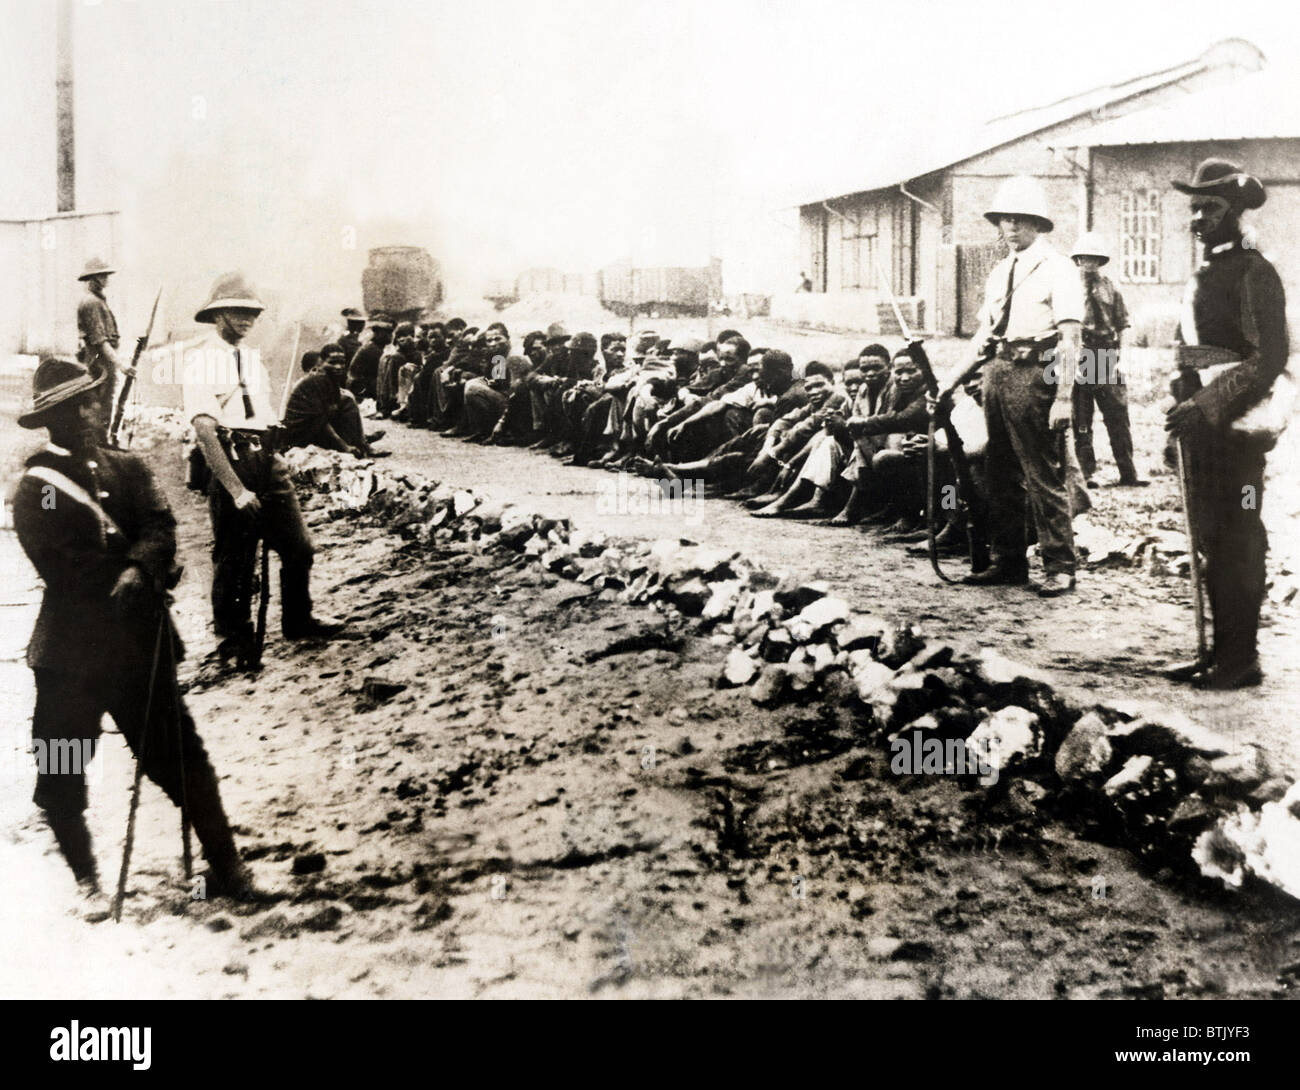 Native round-up by the British government in South Africa, 1930 Stock Photo